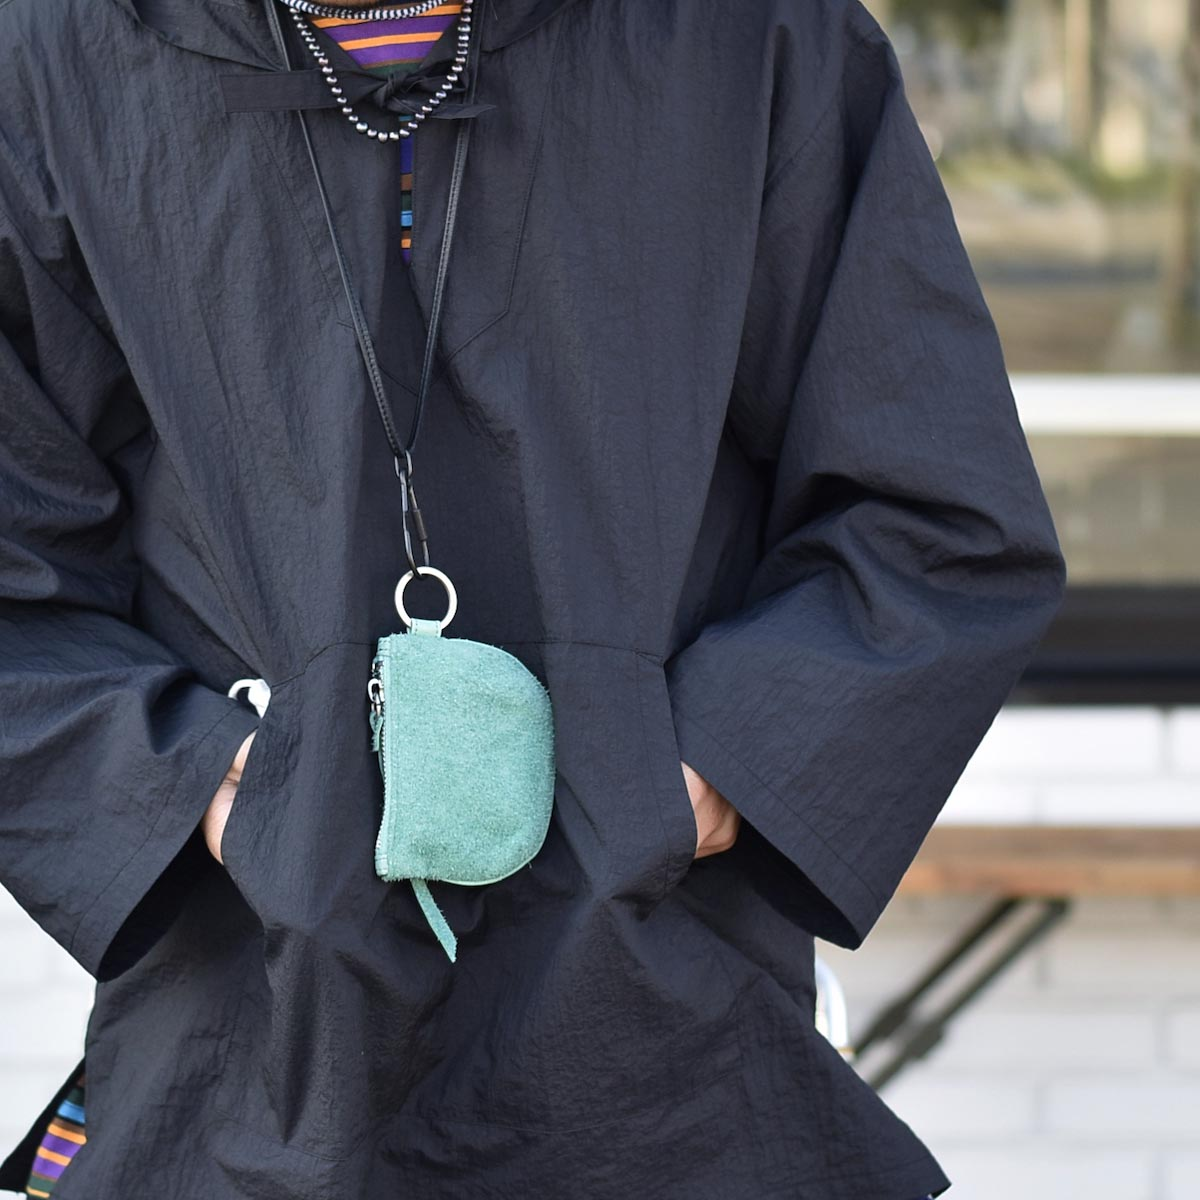 HOBO / COW LEATHER CORD KEY RING (Black)イメージ2